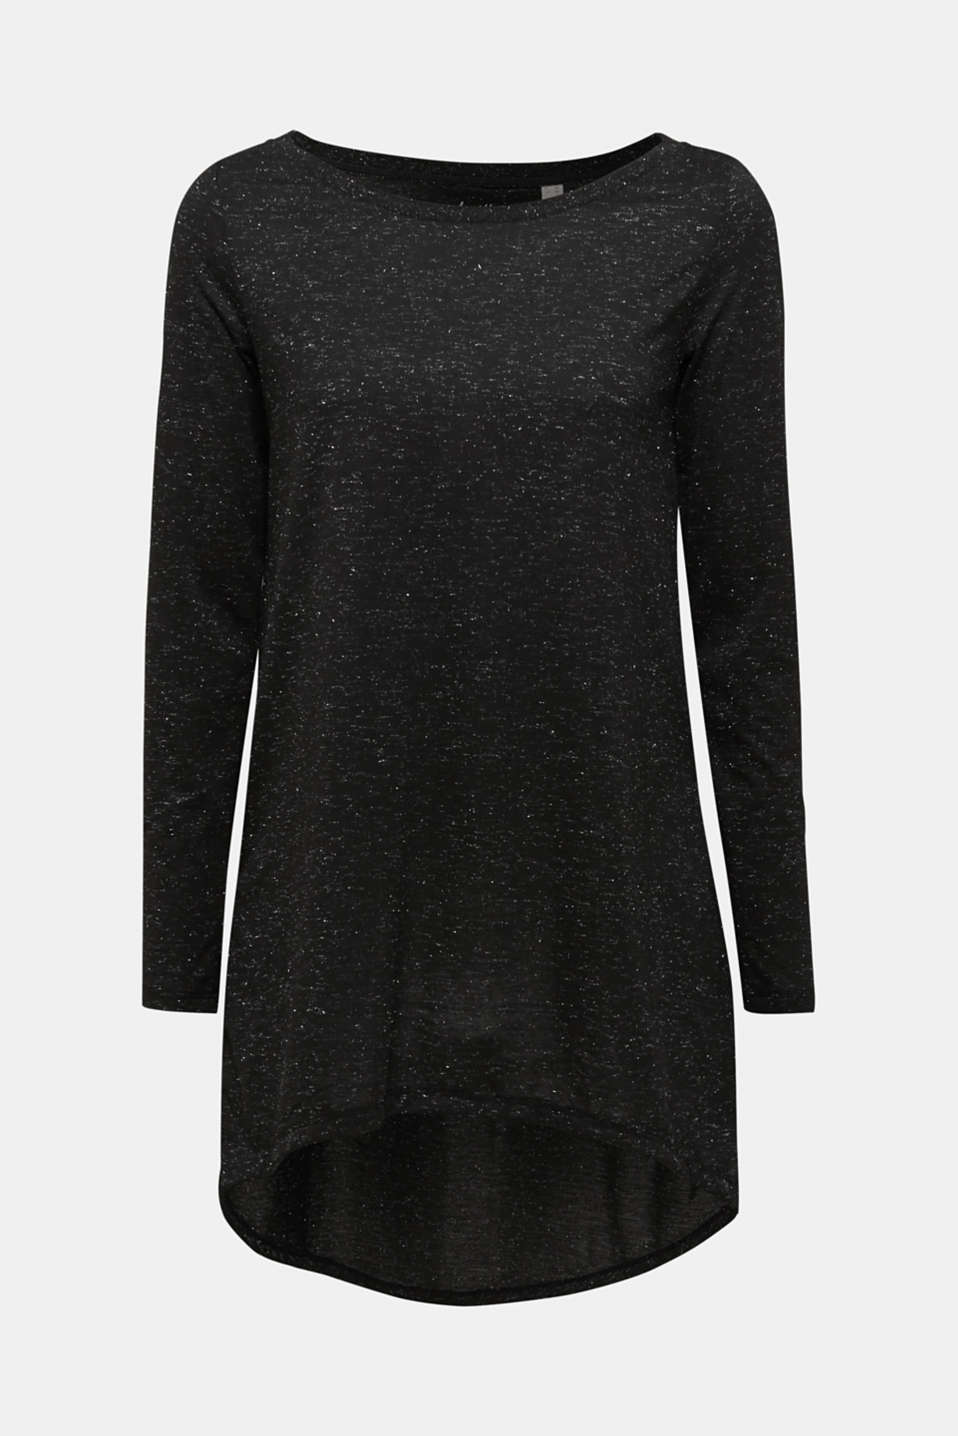 Long T-shirt in a glitter look, BLACK, detail image number 5